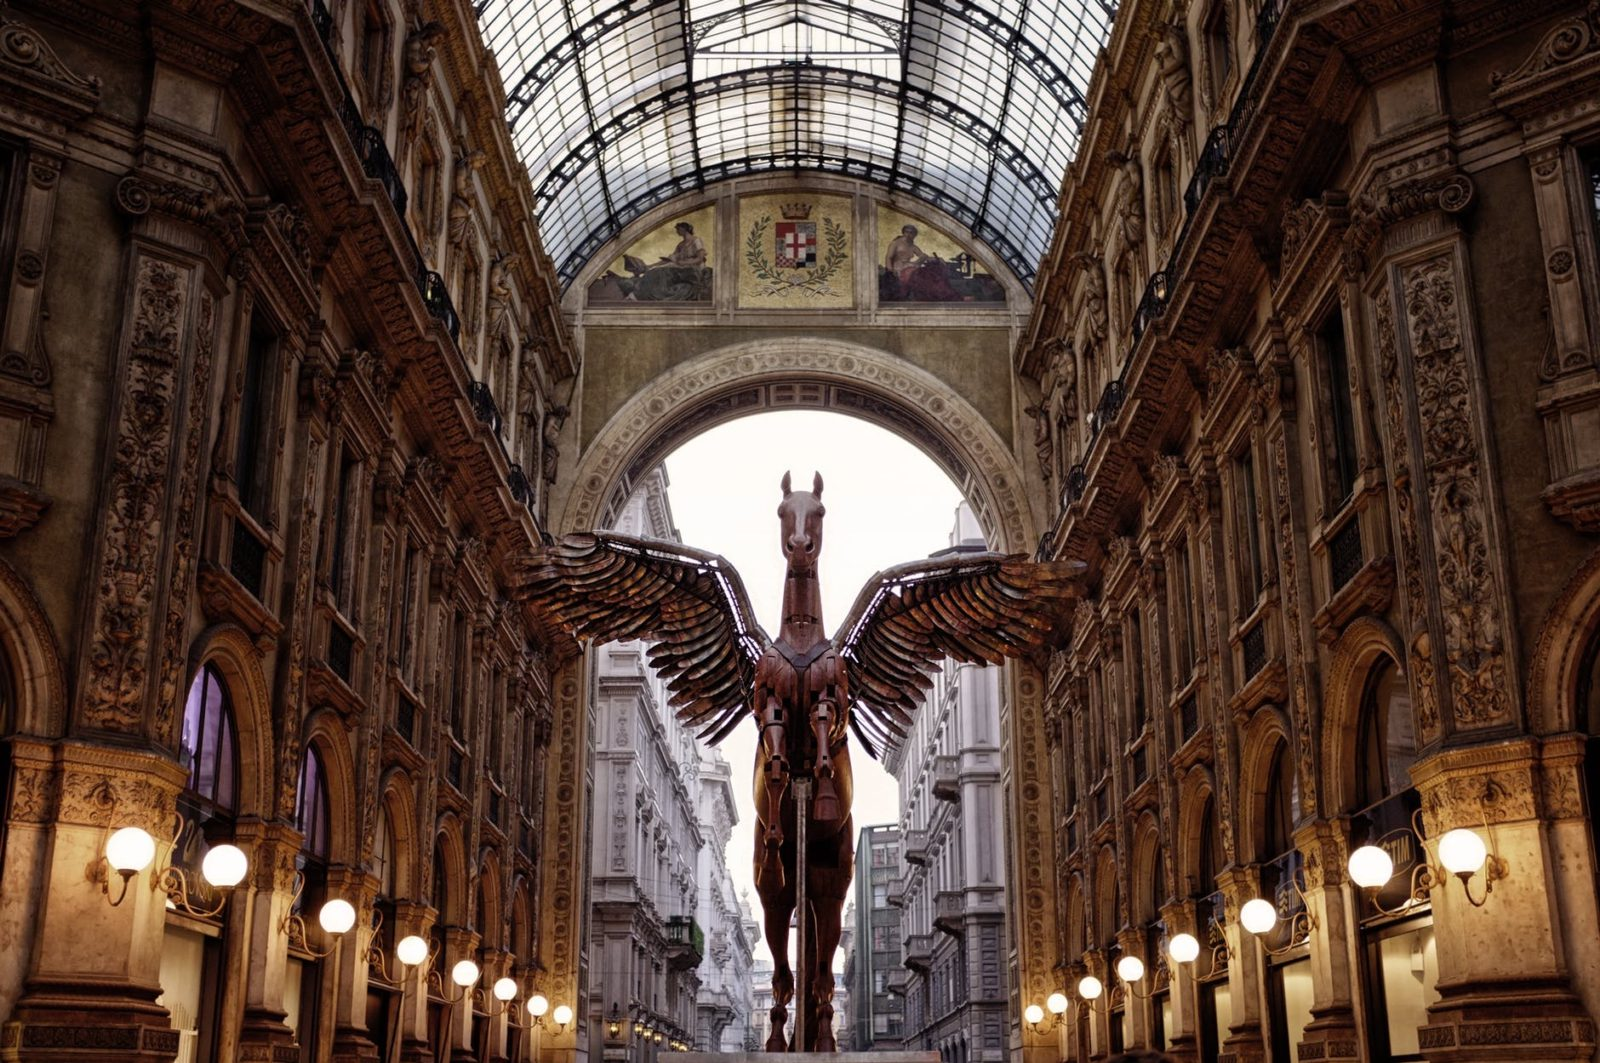 Flight Deal Round Trip From Dallas Area to Milan Italy #dallas #milanitaly #extendedweekend